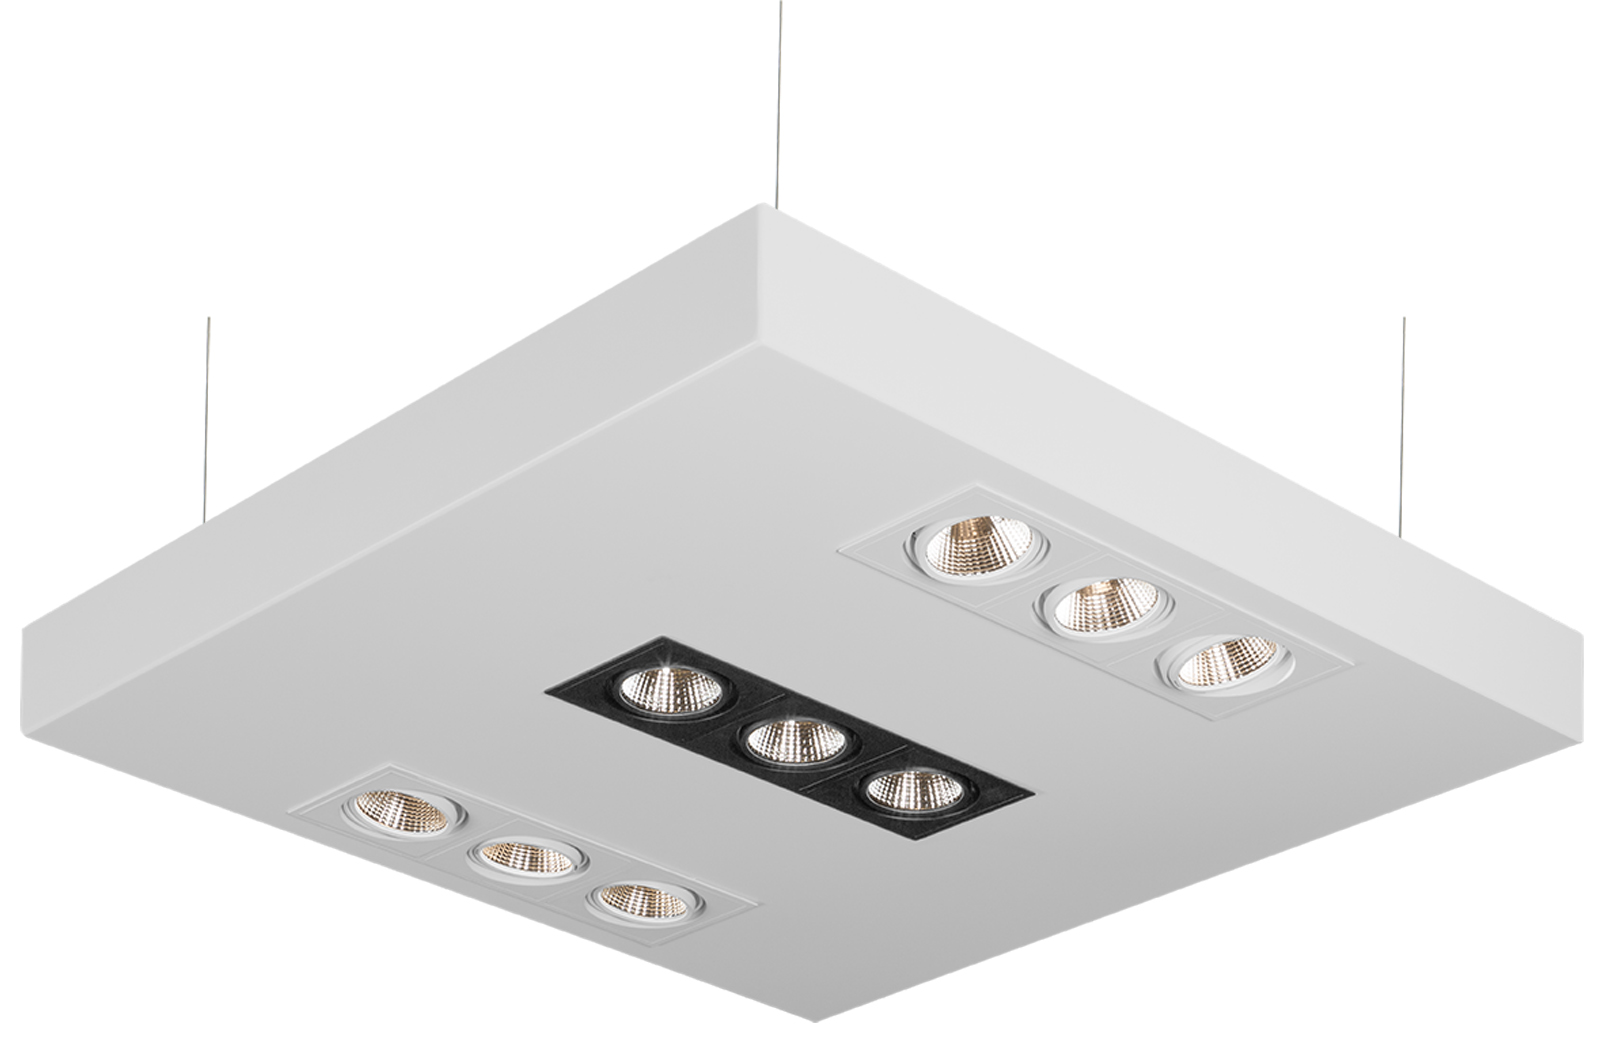 luminaire 1 avec supports-2